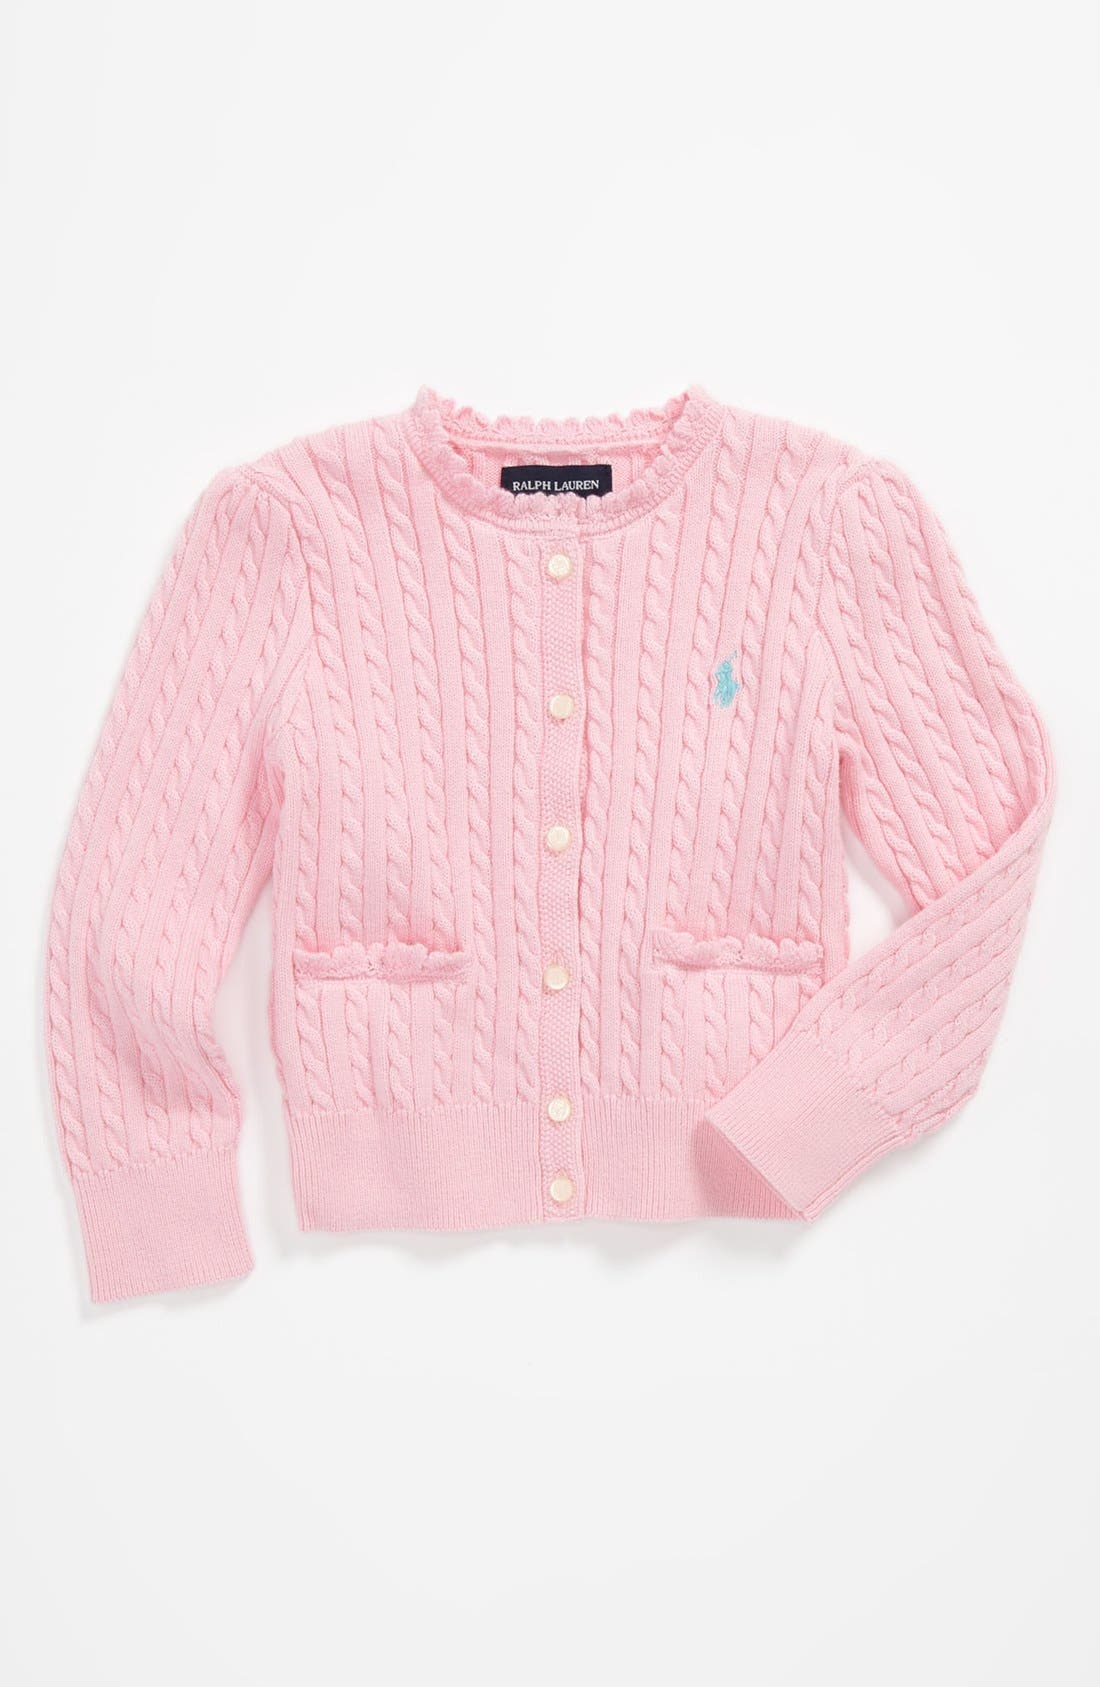 Alternate Image 1 Selected - Ralph Lauren Cable Knit Cardigan (Toddler)